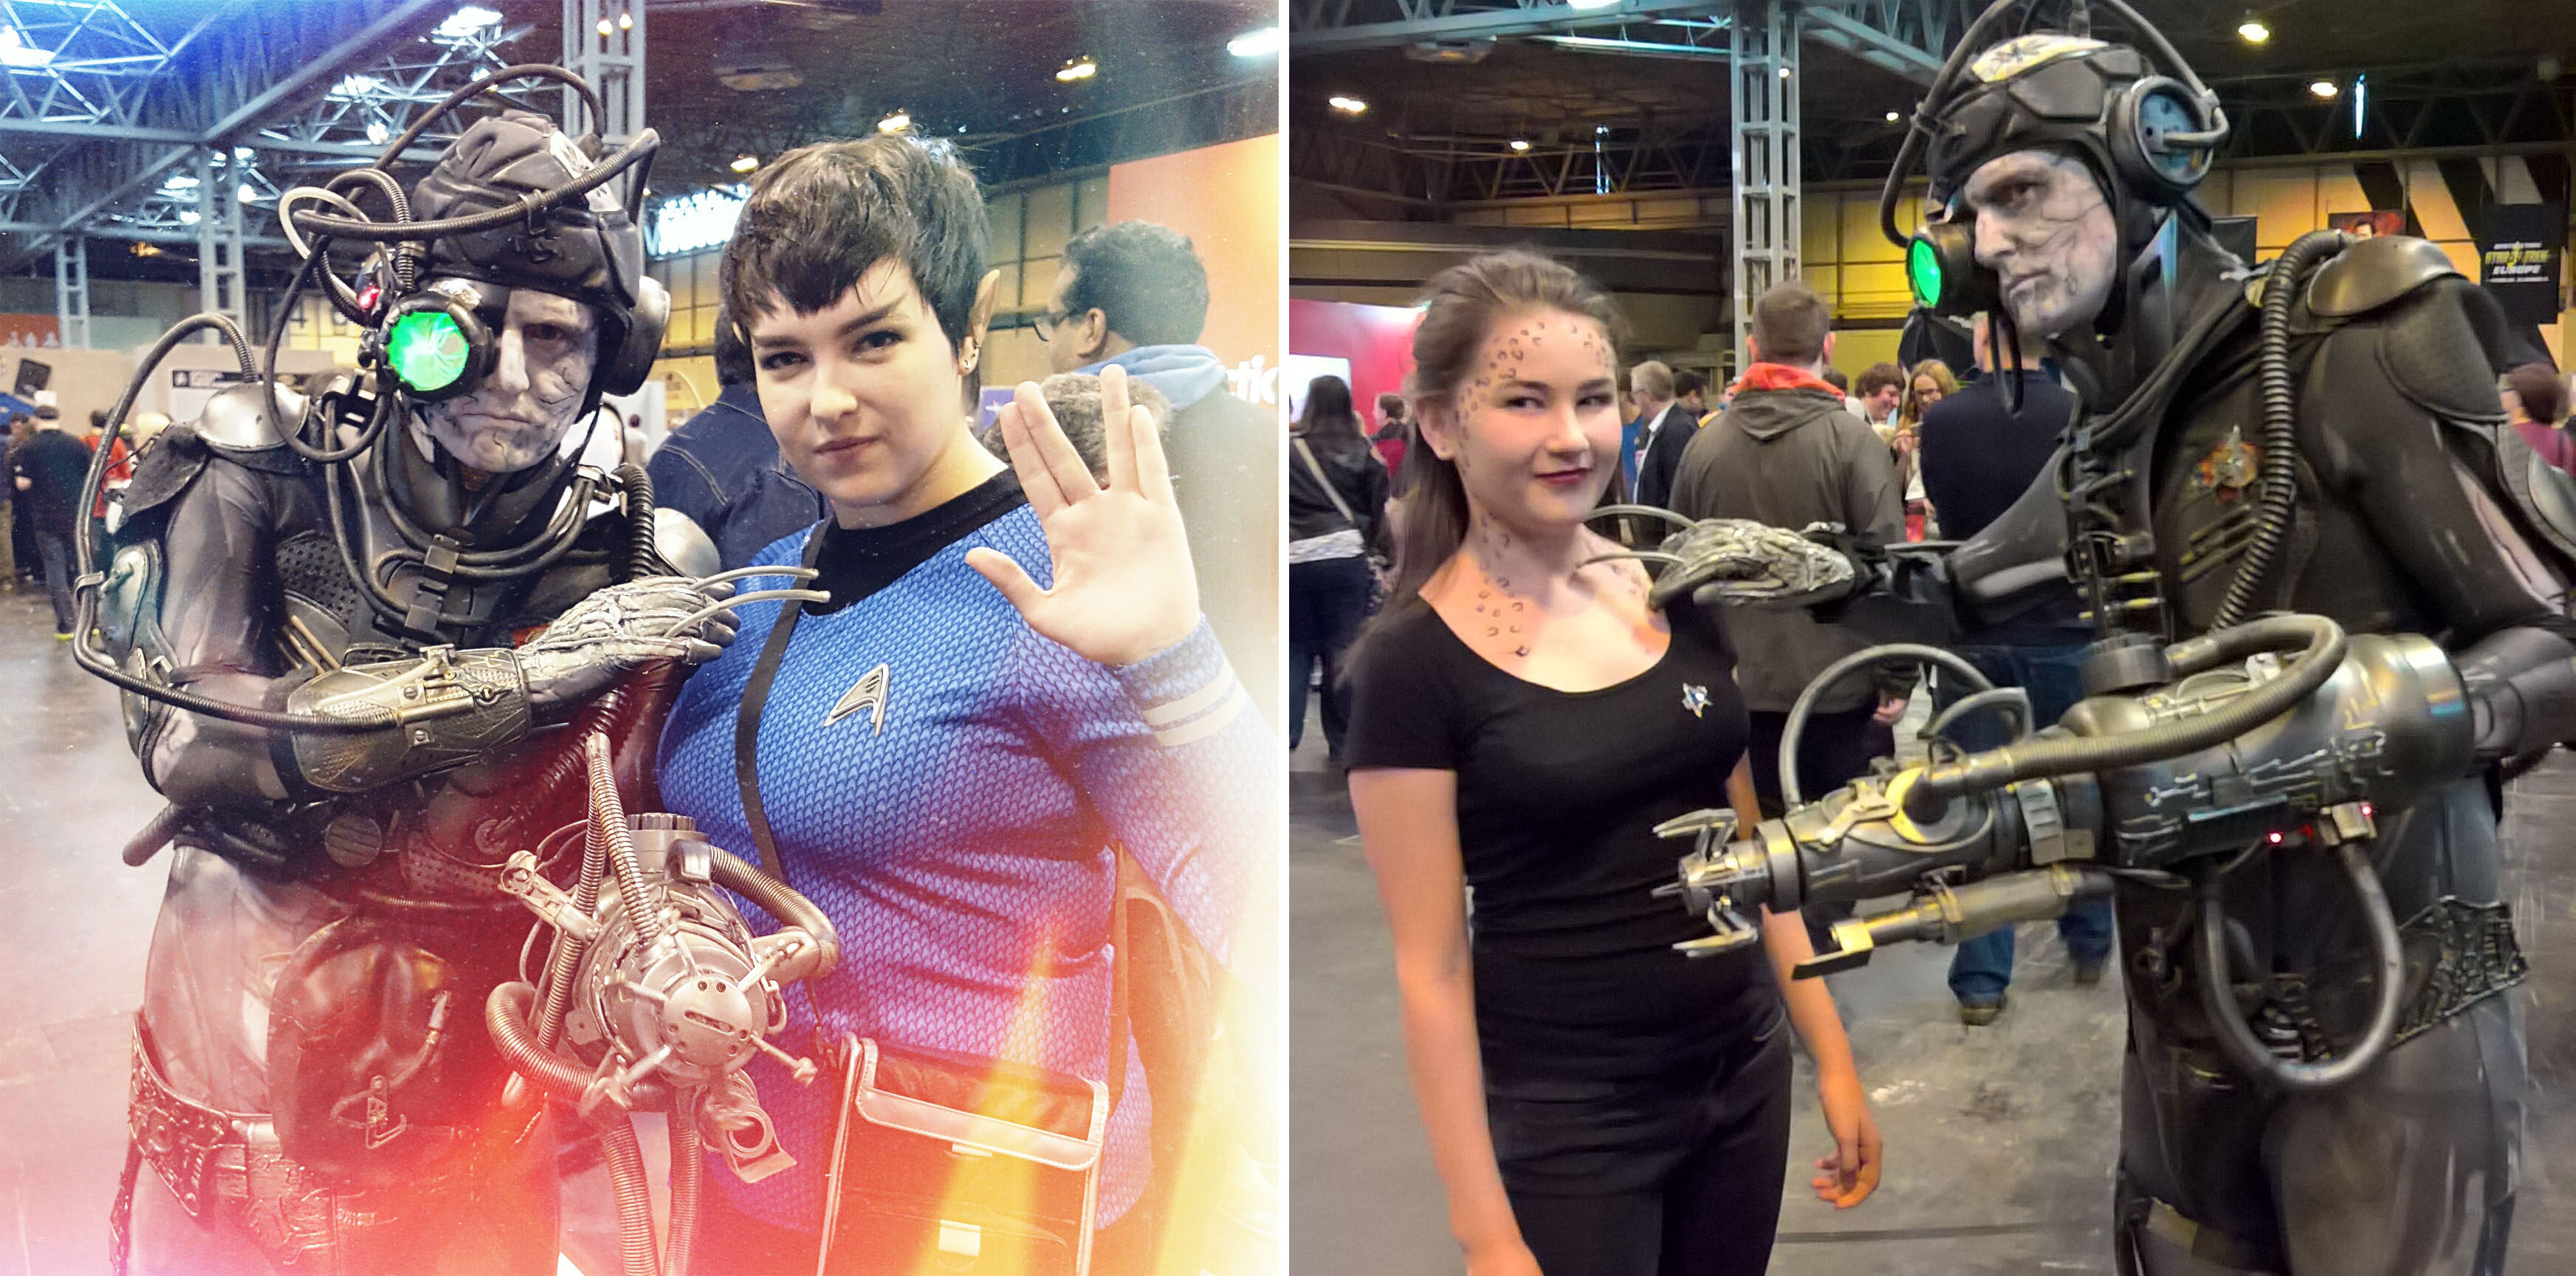 bekah-spock-and-borg-and-cait-jadzia-dax-destination-star-trek-50th-anniversary-oct-2016